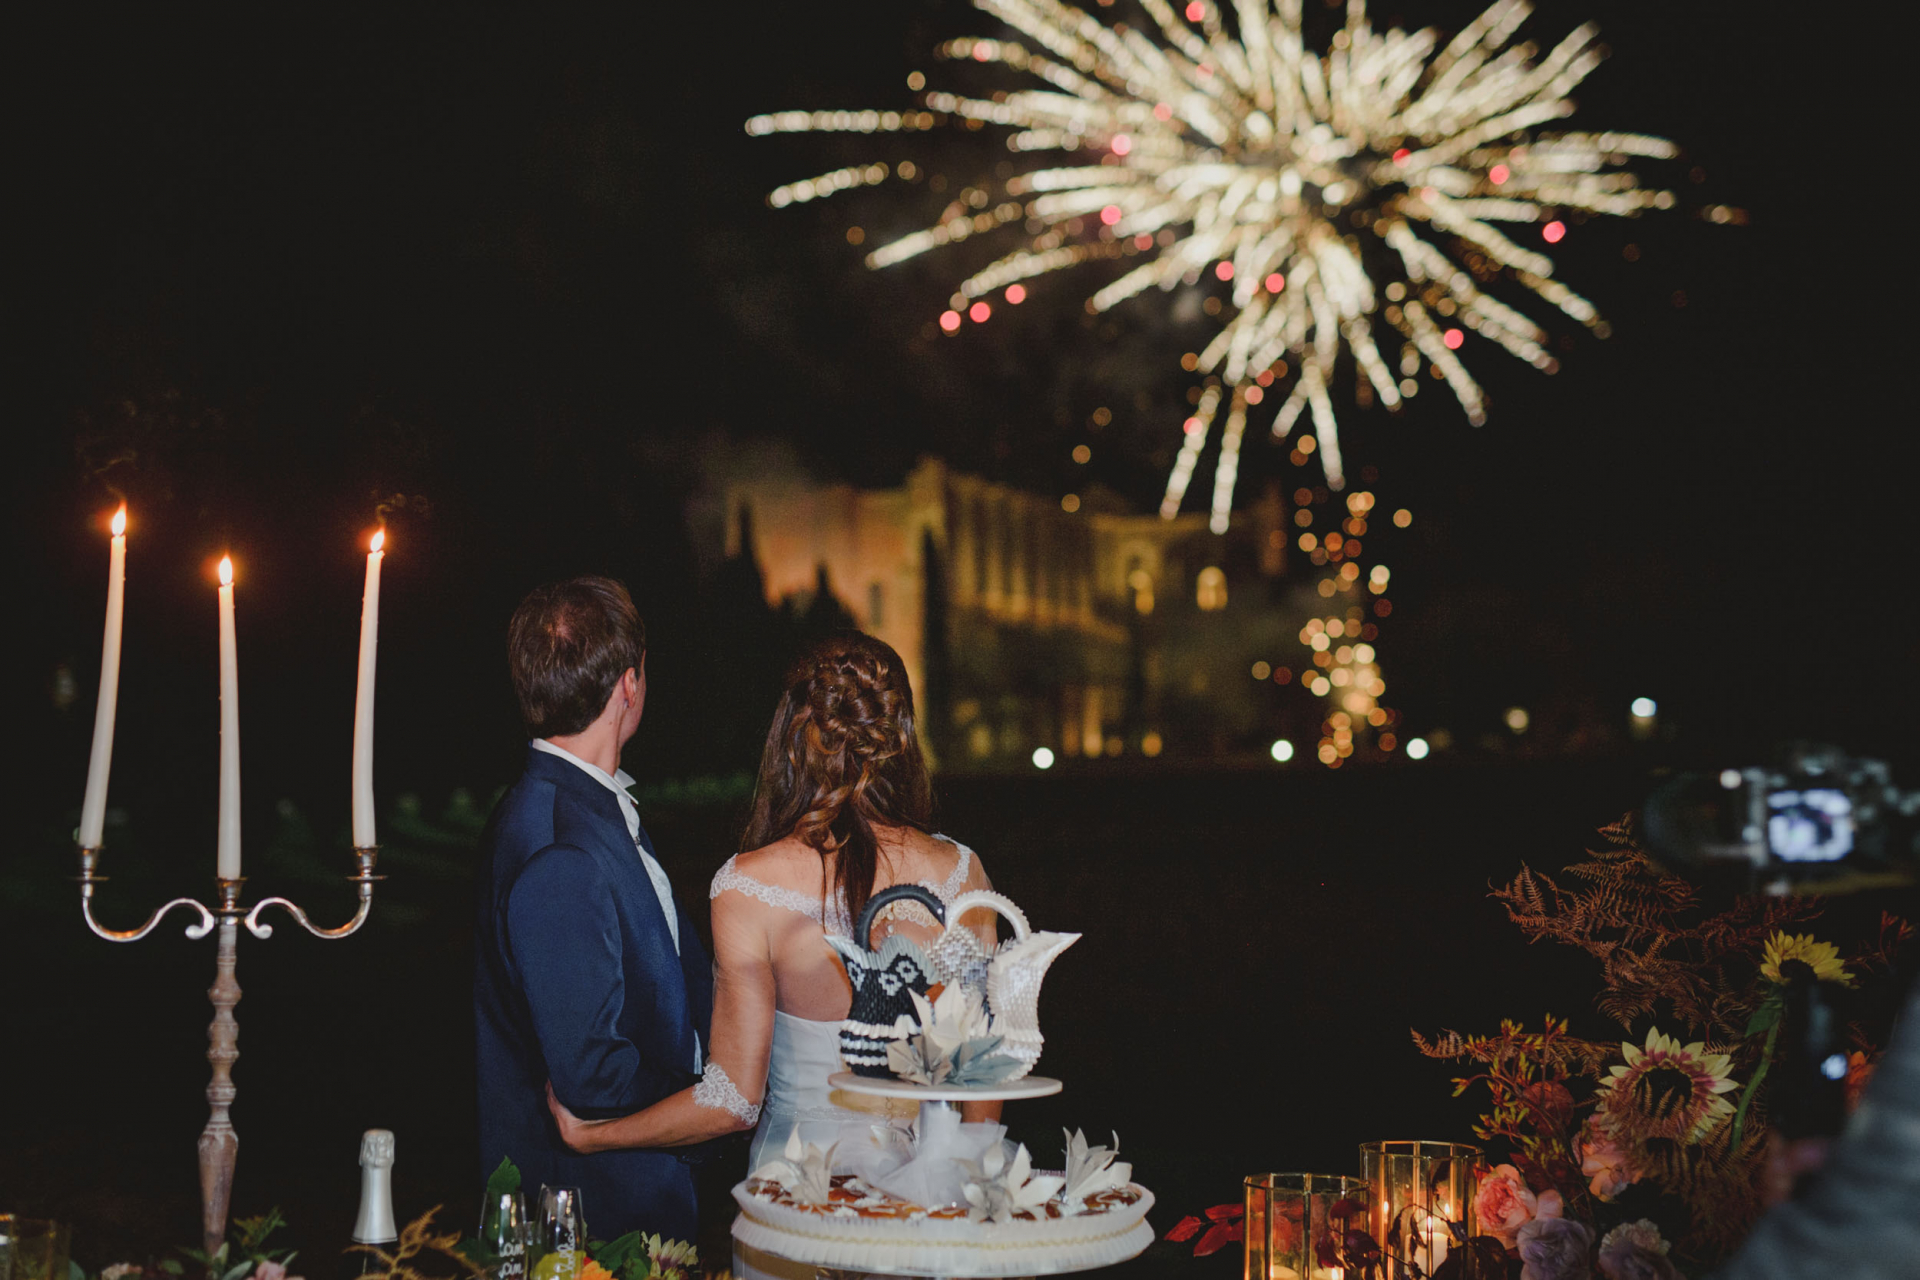 Agriturismo San Galgano Elopement Photography   The couple, after cutting their cake and enjoying their outdoor reception by candlelight